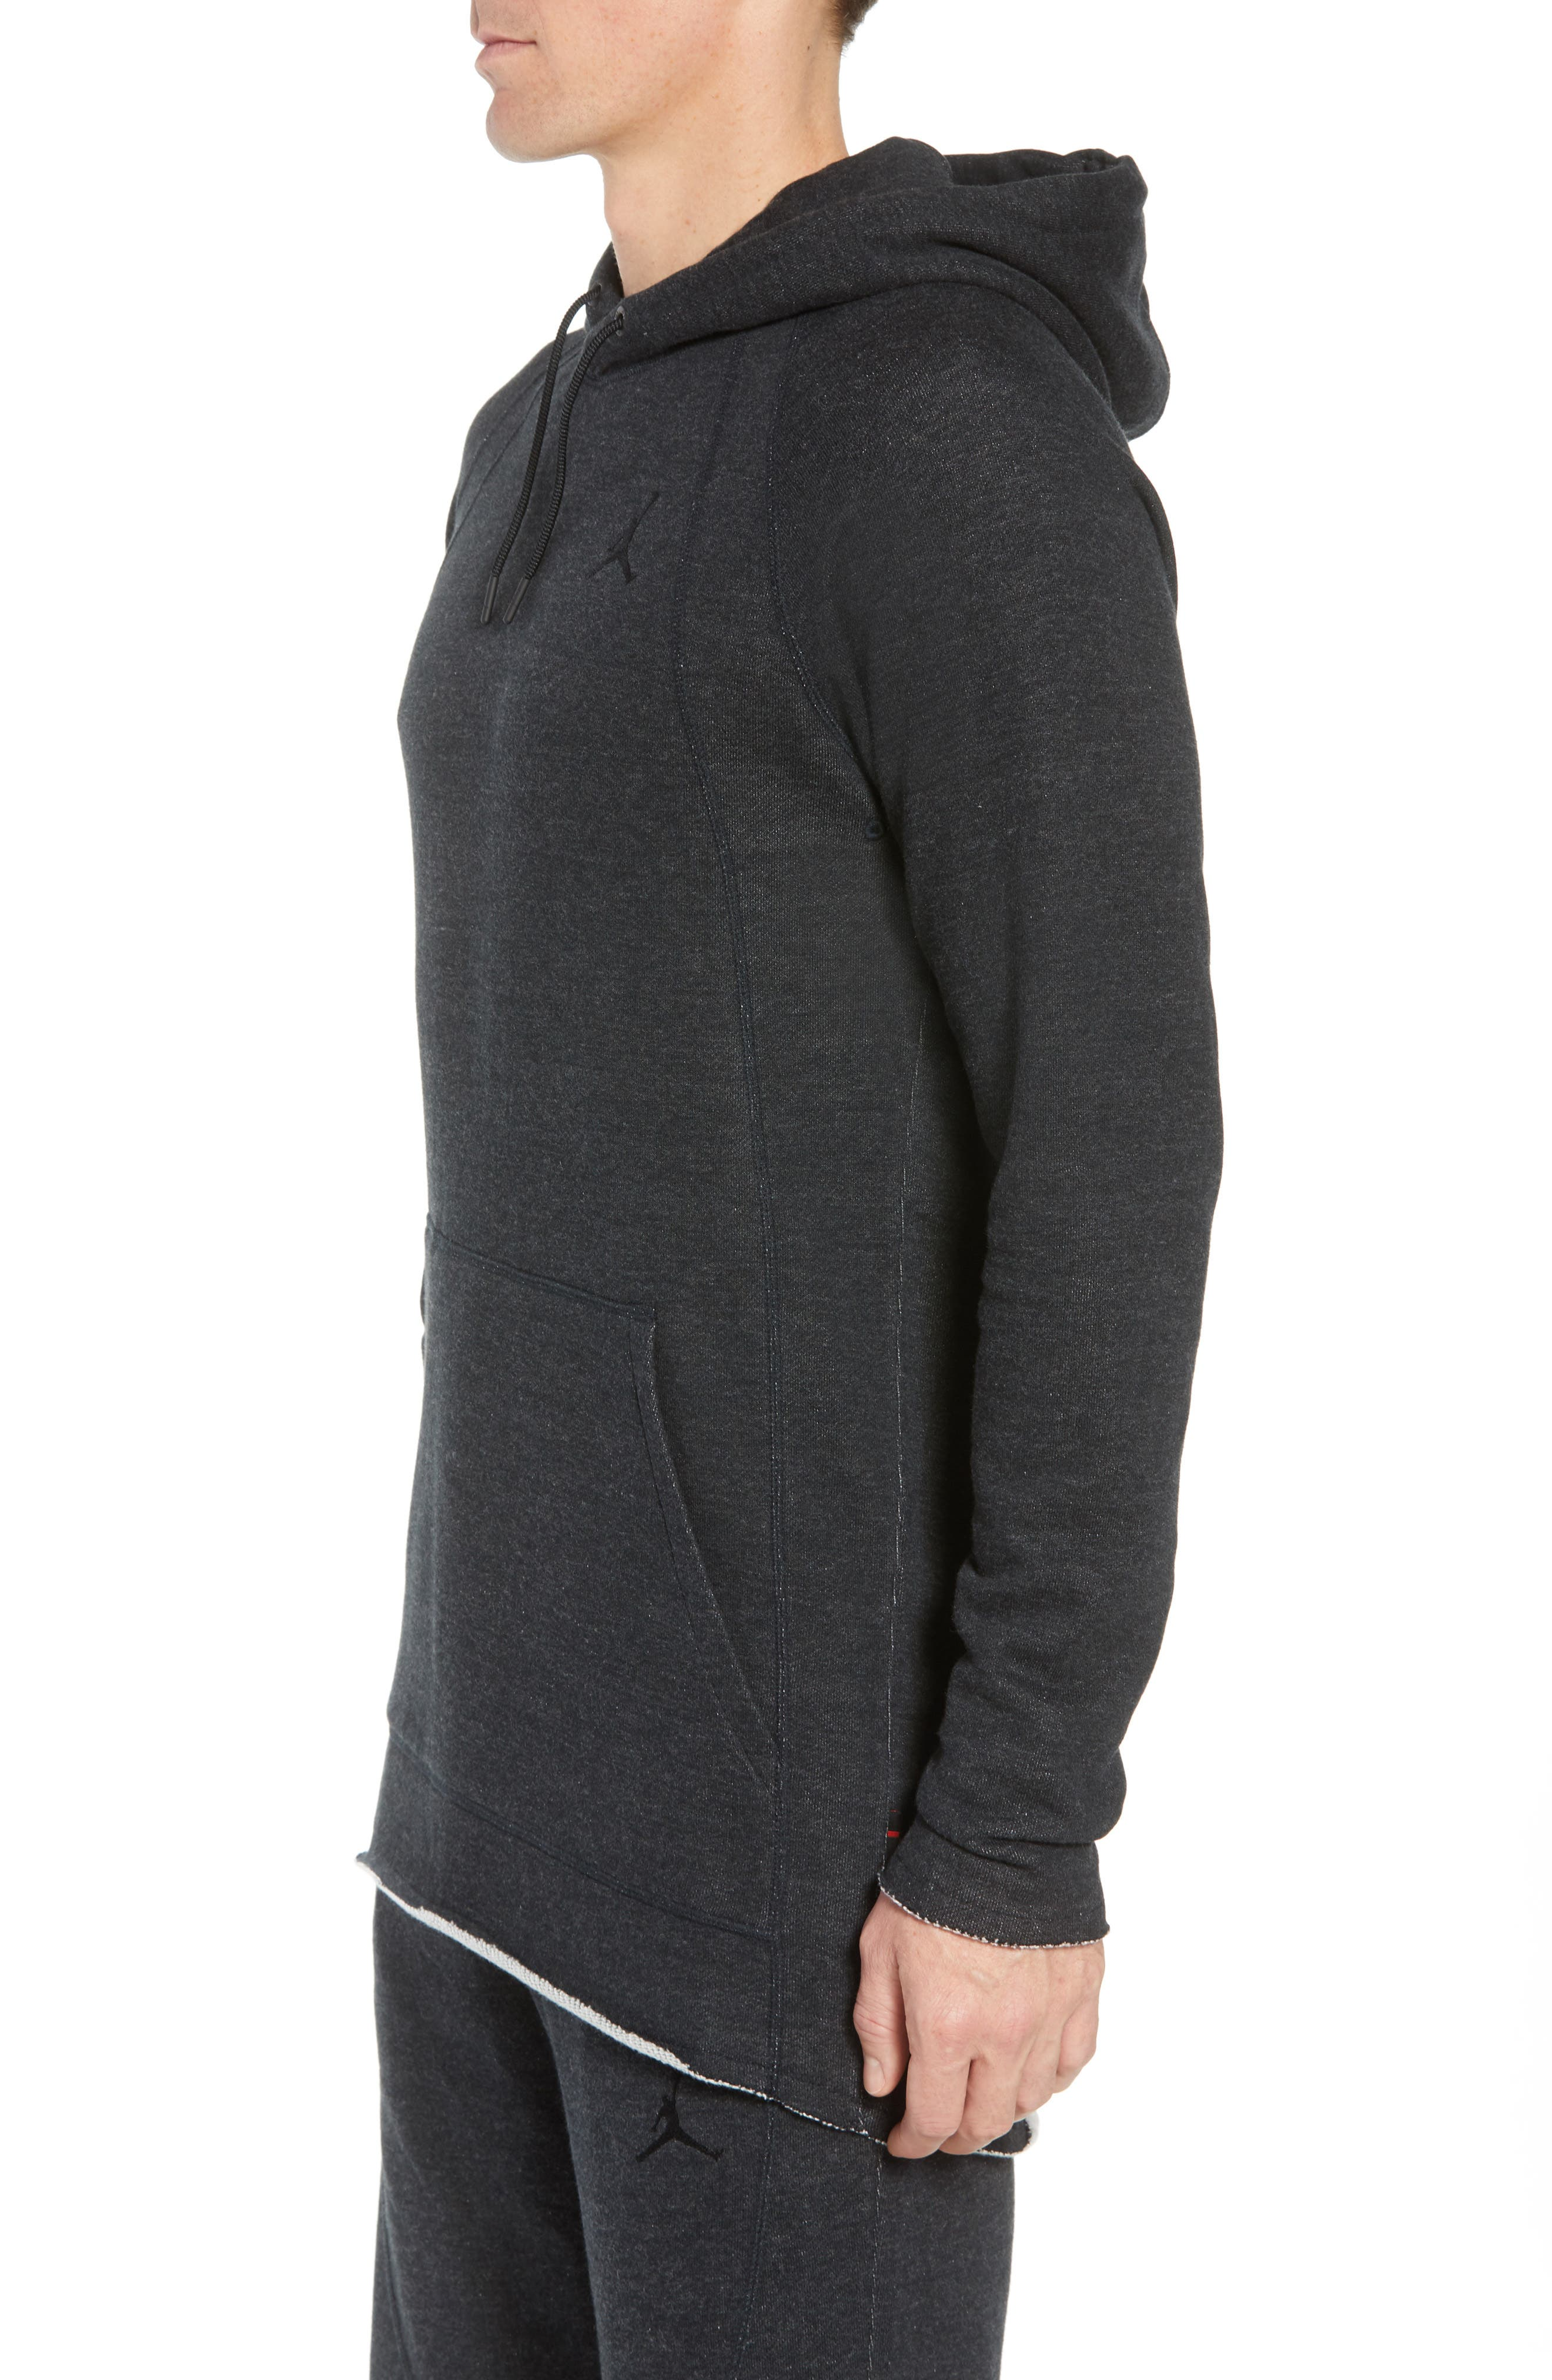 Wings Light French Terry Hoodie,                             Alternate thumbnail 3, color,                             BLACK HEATHER/ BLACK